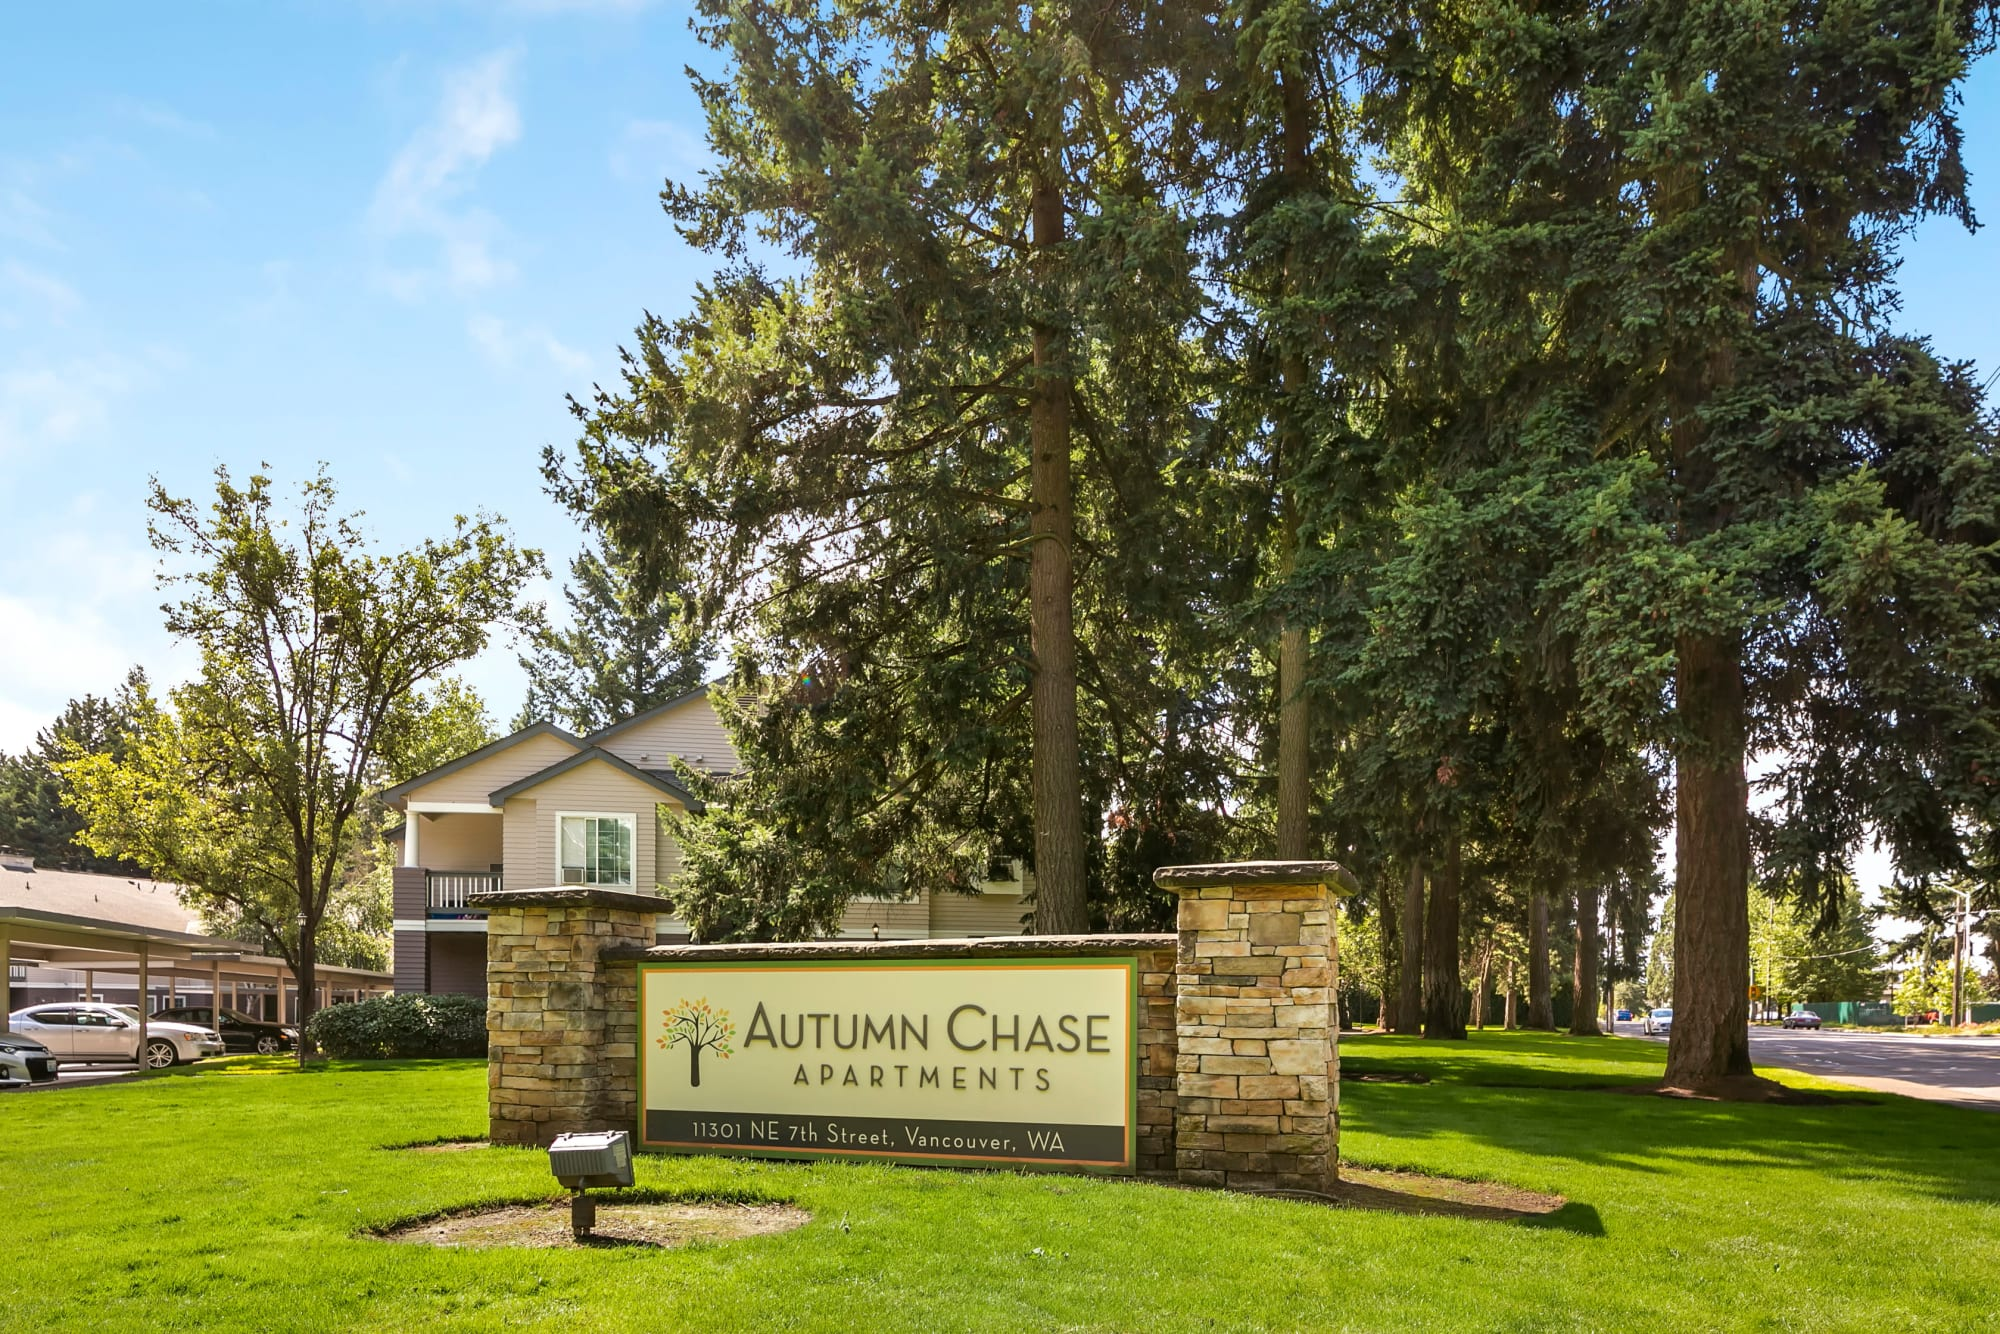 The monument sign in front of Autumn Chase Apartments in Vancouver, Washington